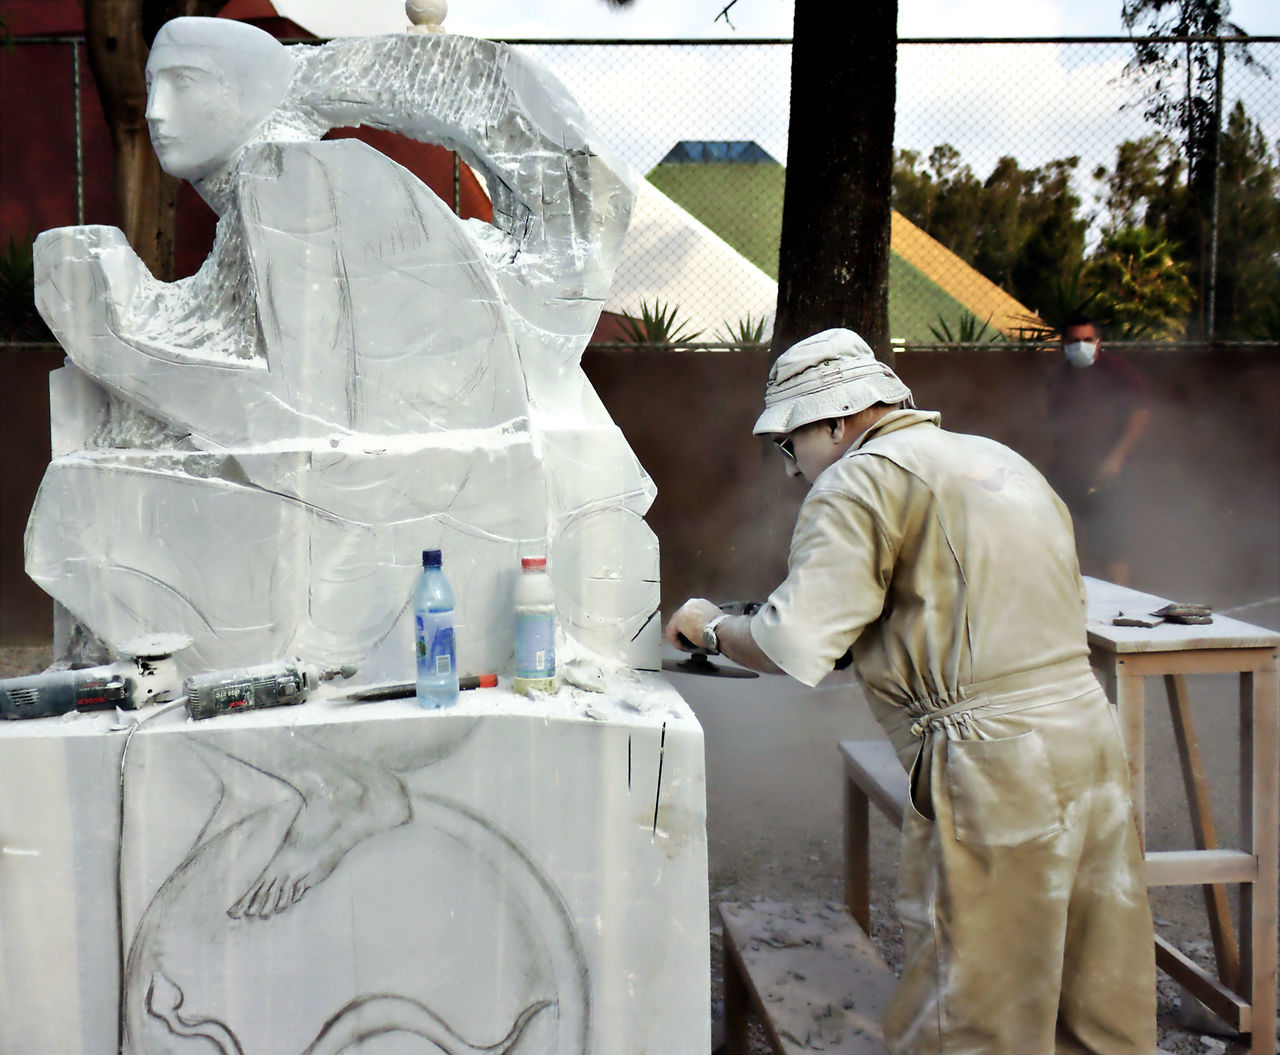 Artist Artist At Work Building Materials Circular Saw Circular Tool Construction Machinery Construction Site Cutter Day Dust Fine Art Photography From My Point Of View Grinder Handmade Marble Marble Sculpture Marble Statue One Worker Outdoors Power Tools Safety Saw Still Life Travel Urban